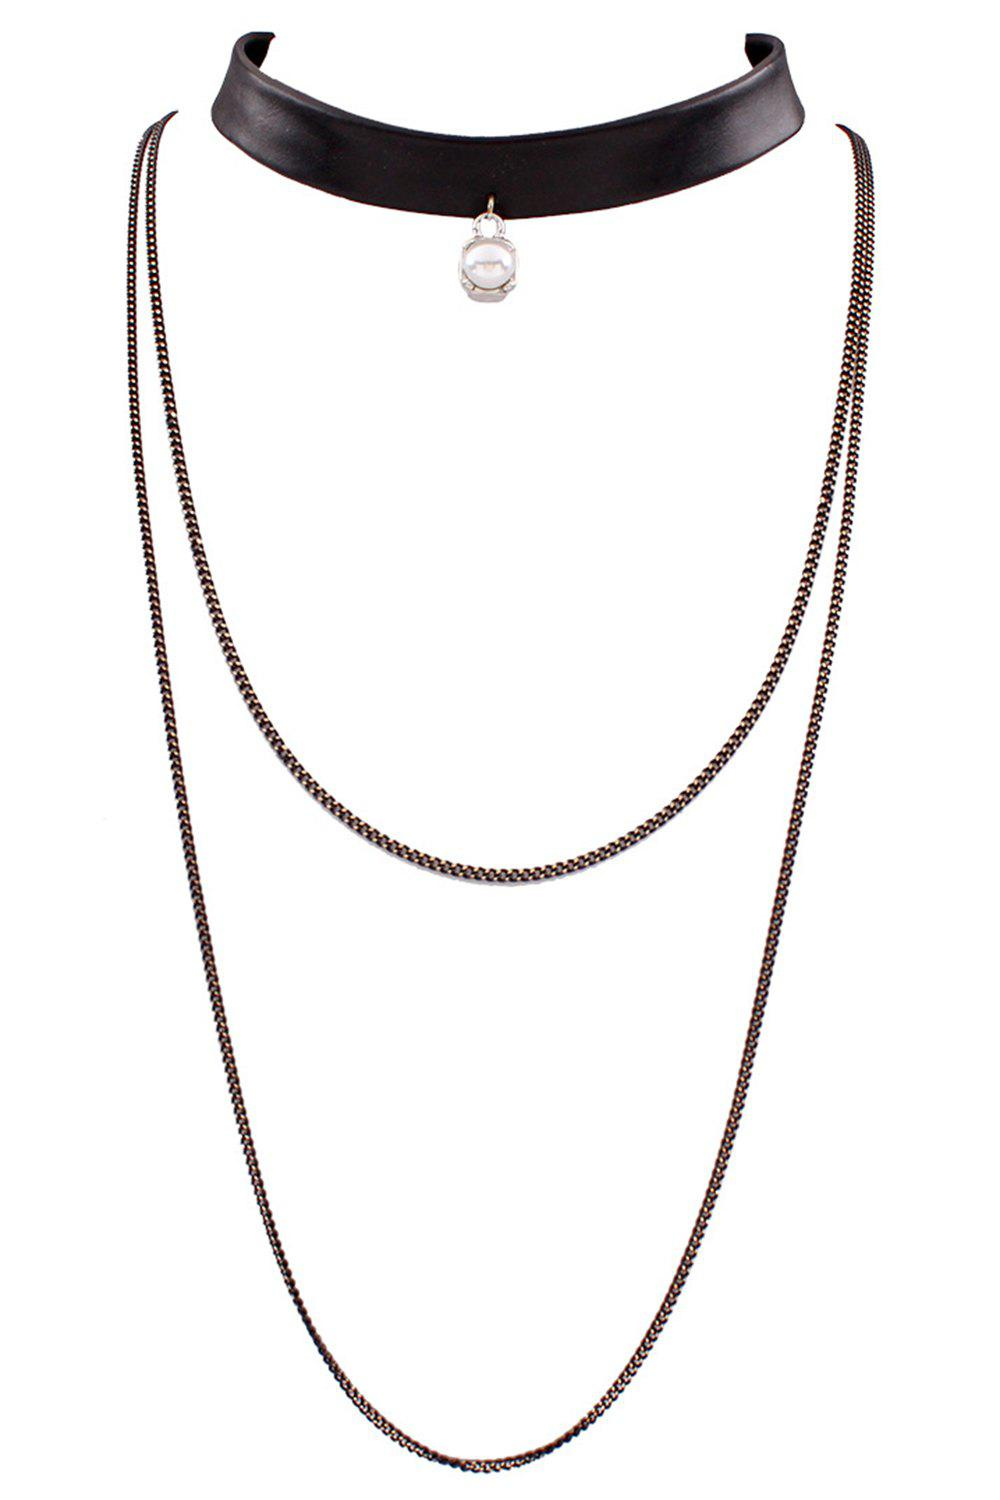 Chic Two Layered Chain PU Necklace For Women